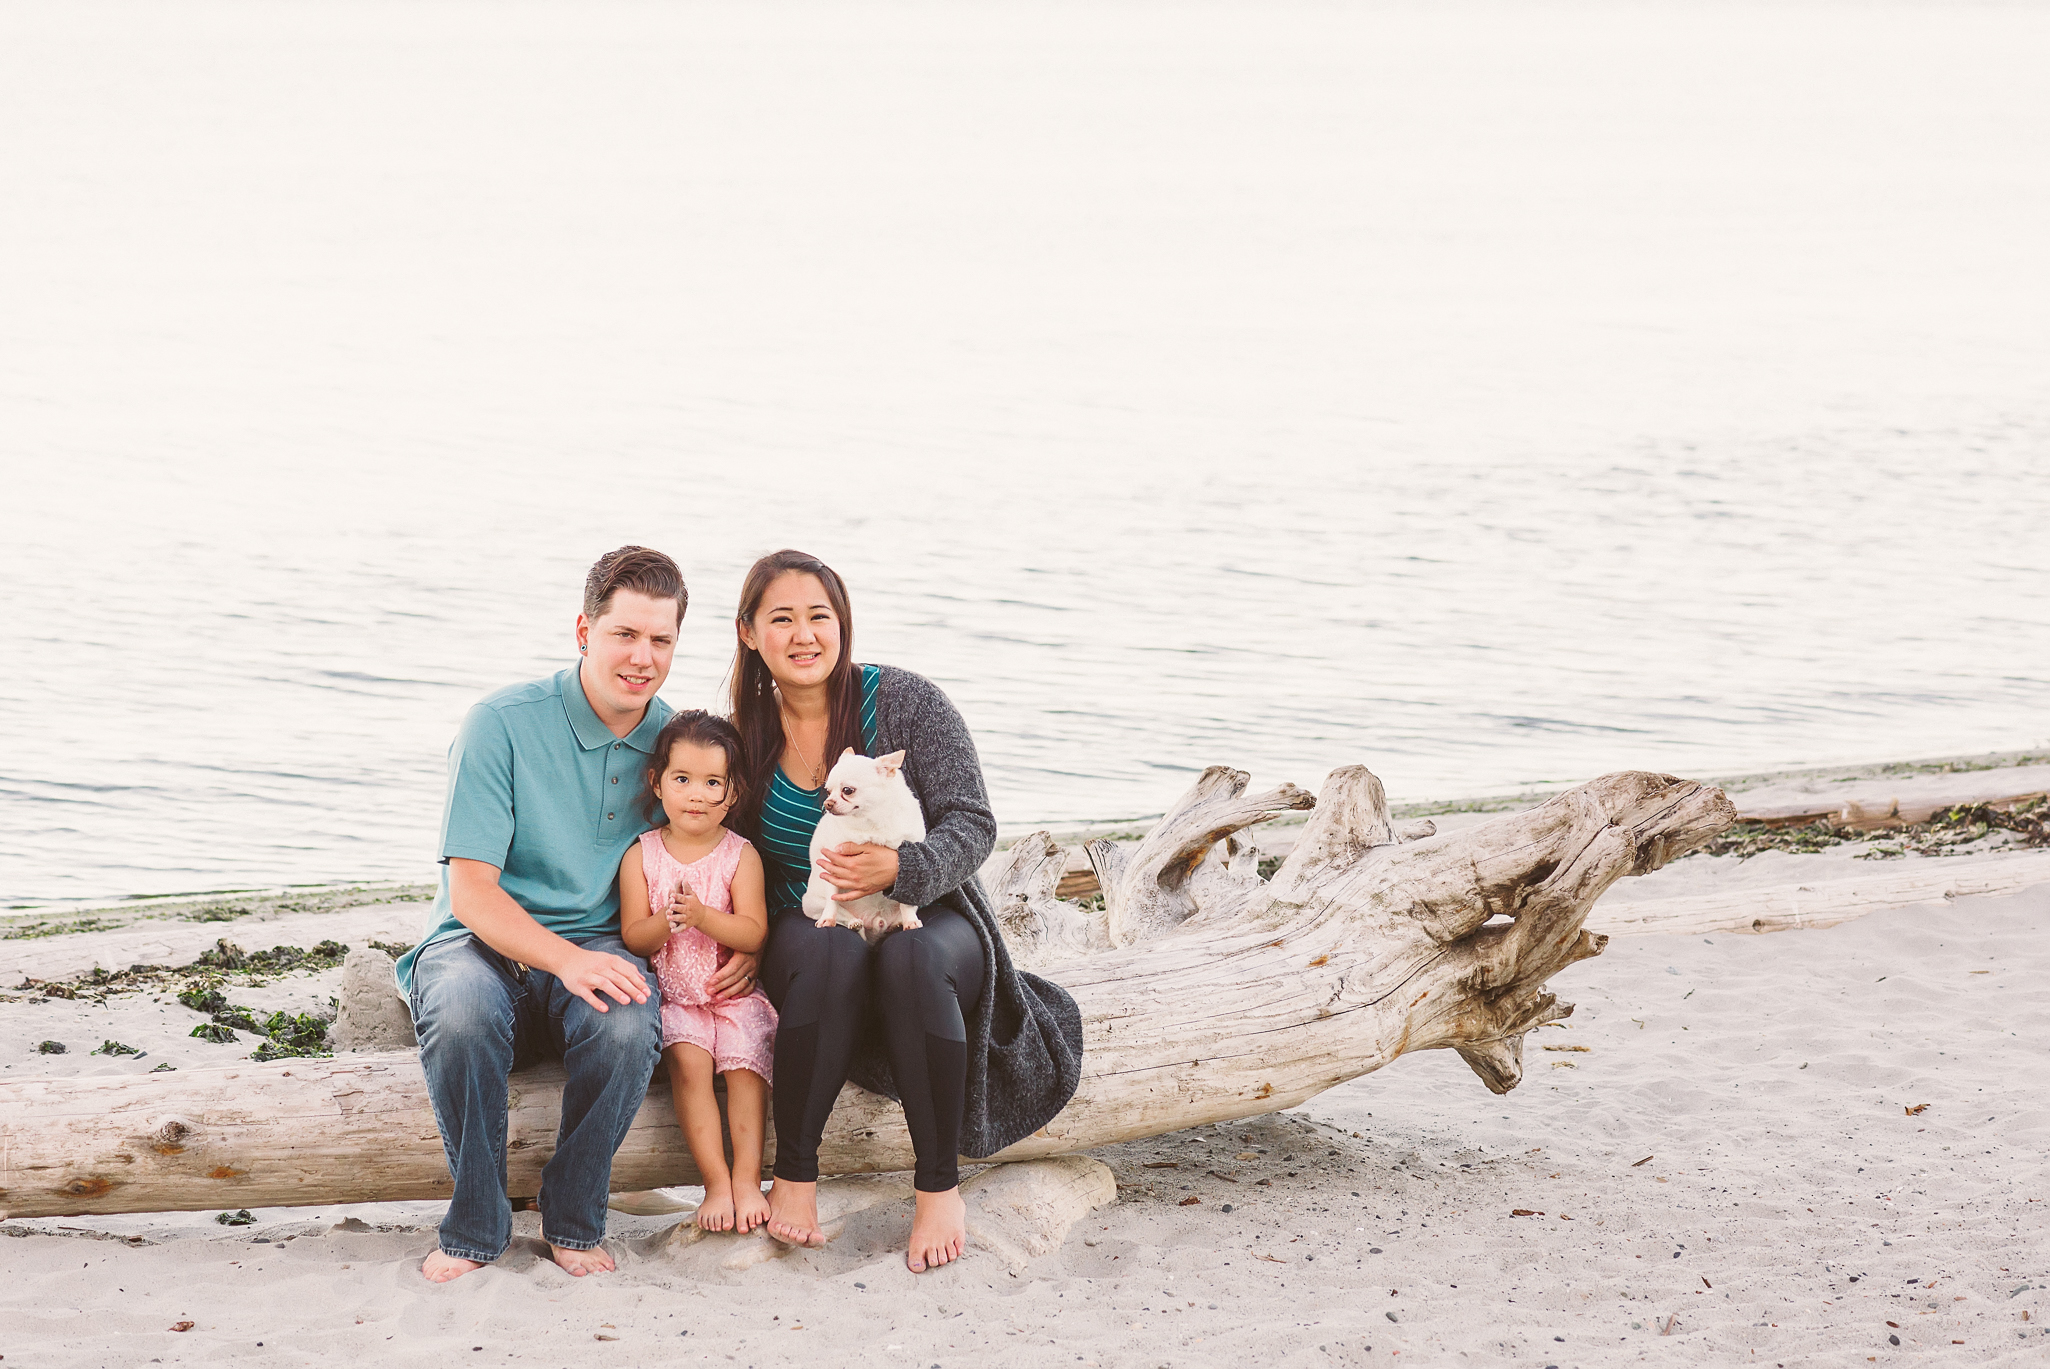 Lily and Lane-Victoria-Children-and-Family-Photographer